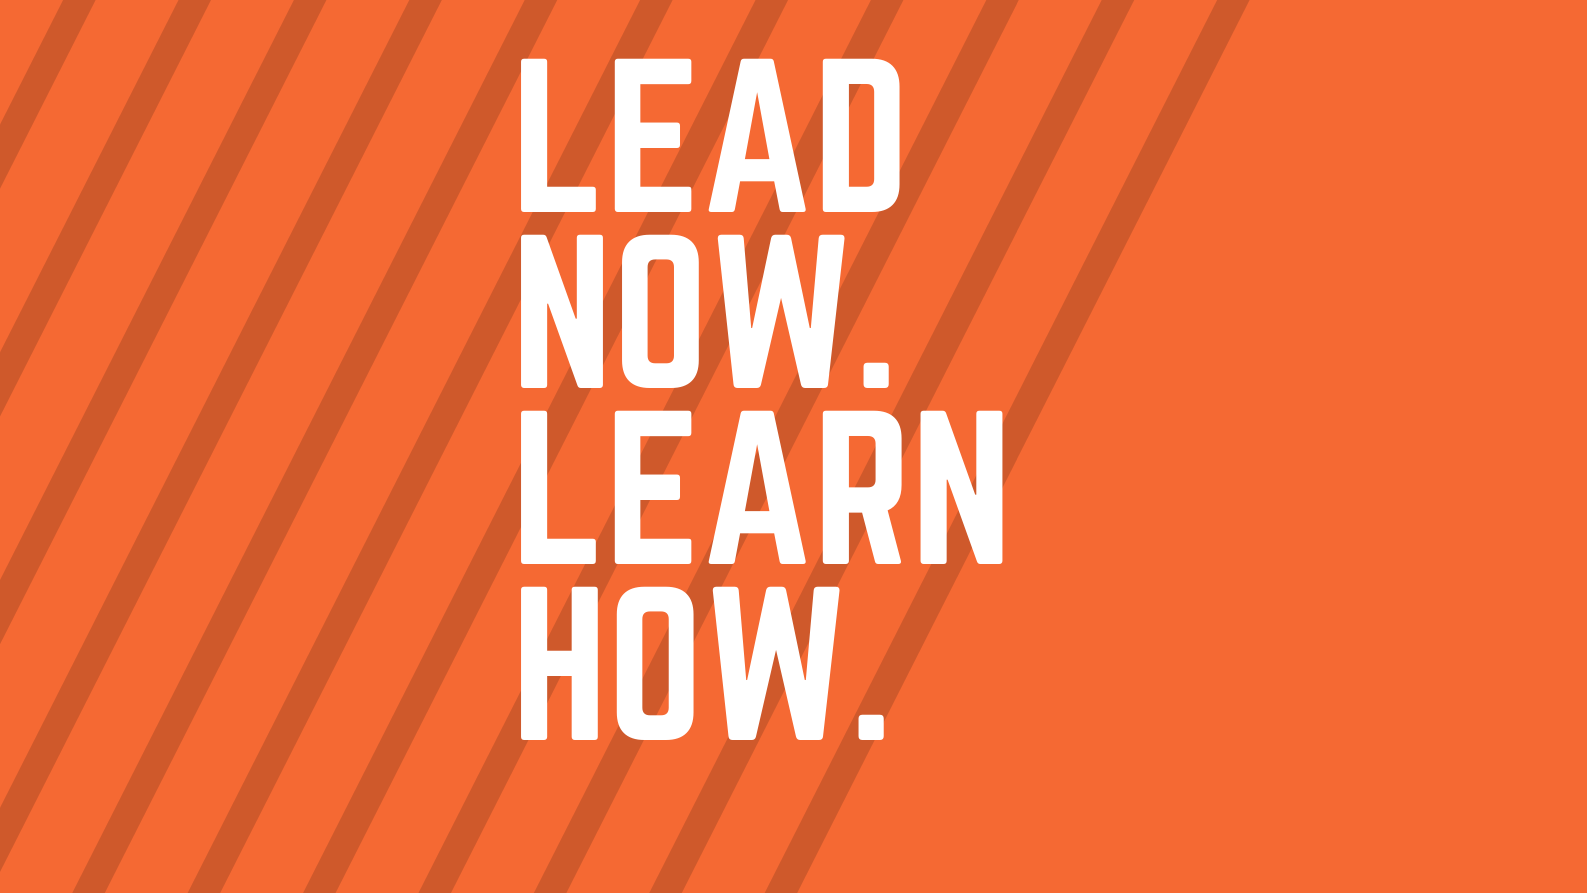 Lead Now. Learn How.